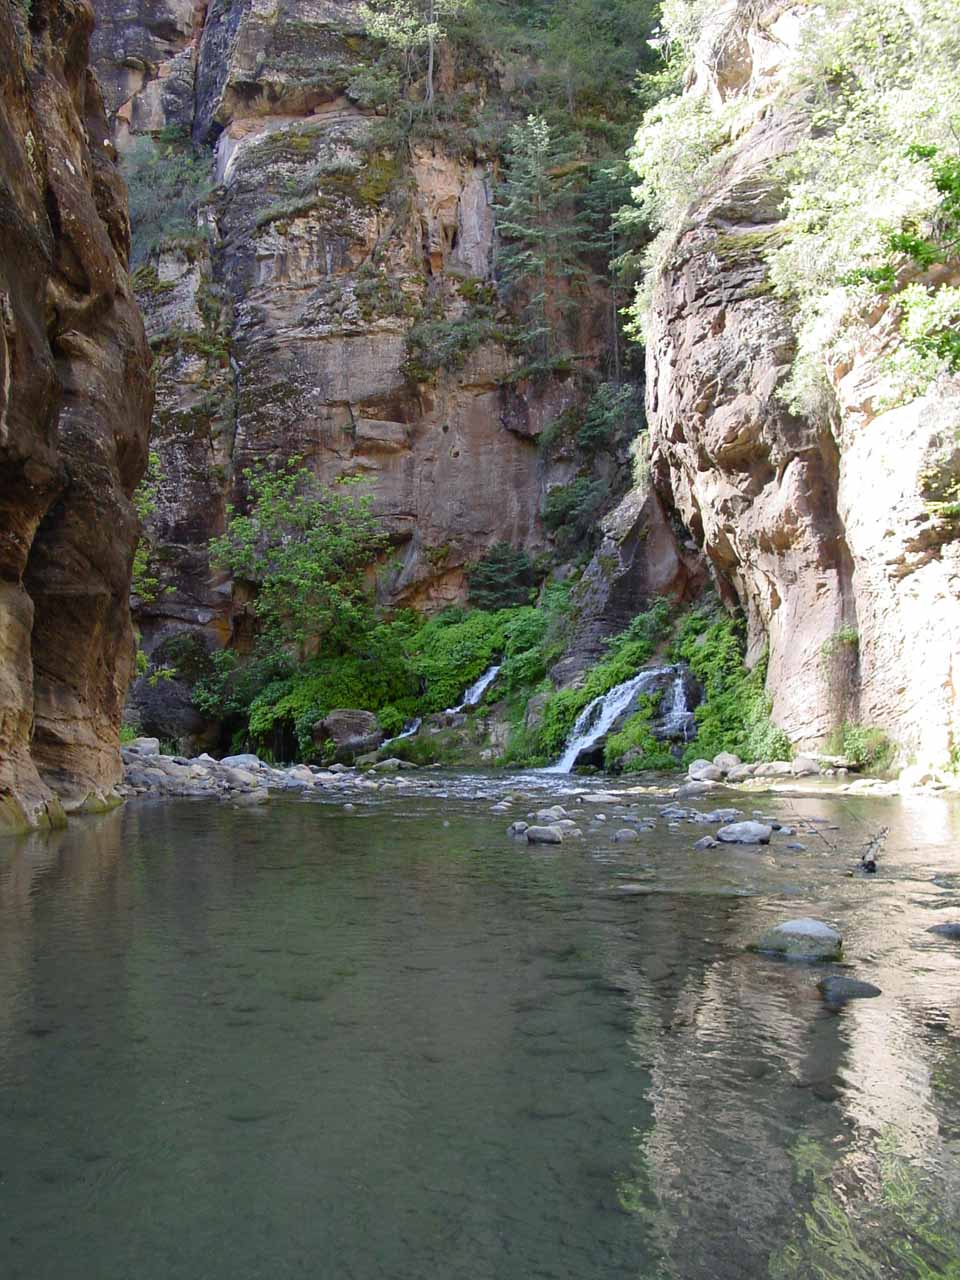 Approaching Big Spring in the Narrows